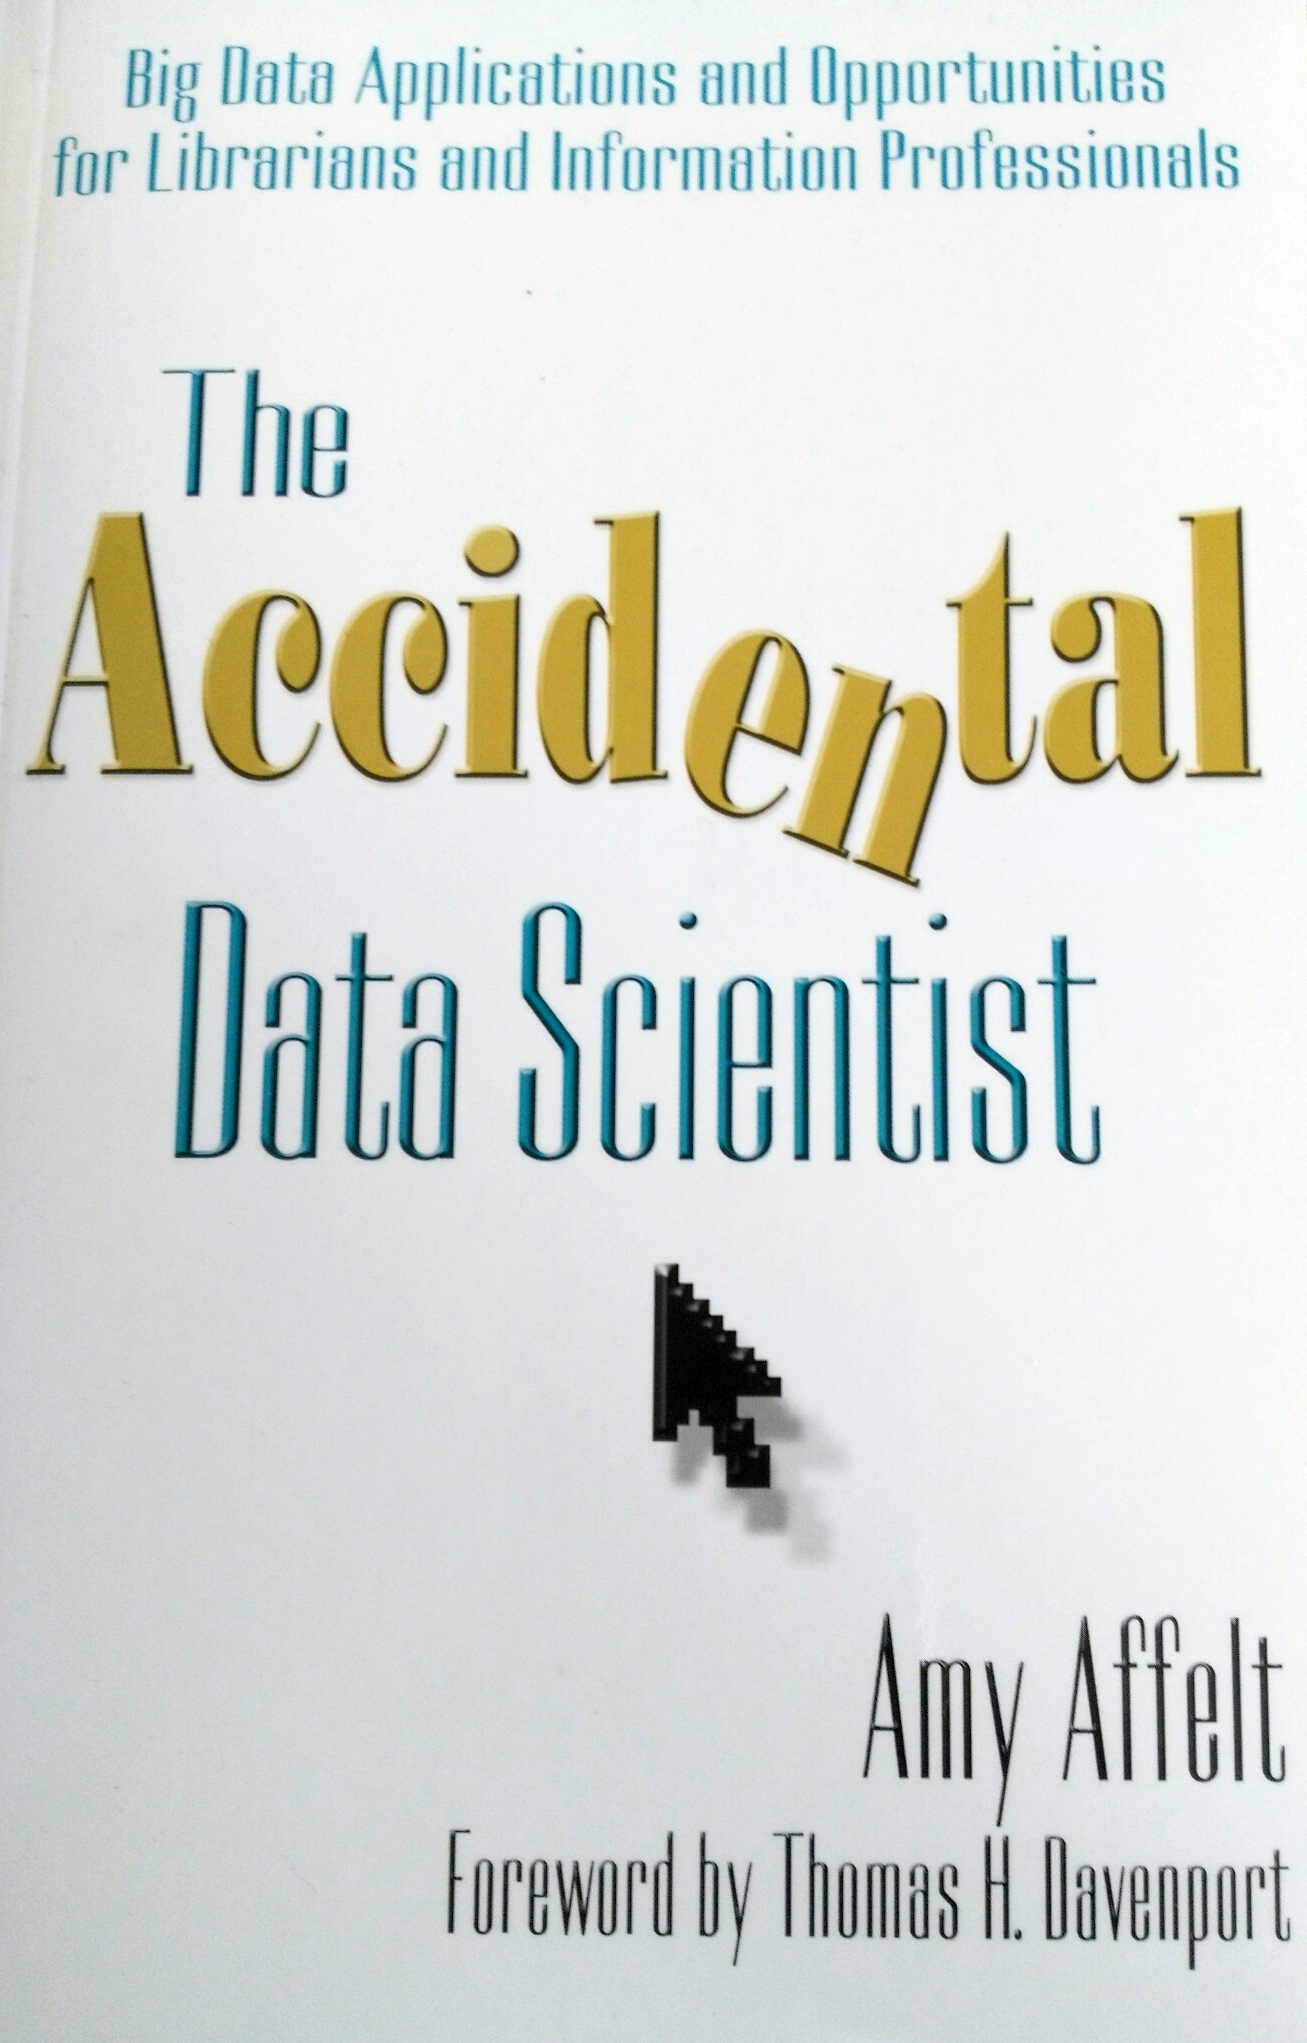 Image of book cover 'The Accidental Data Scientist' by Amy Affelt